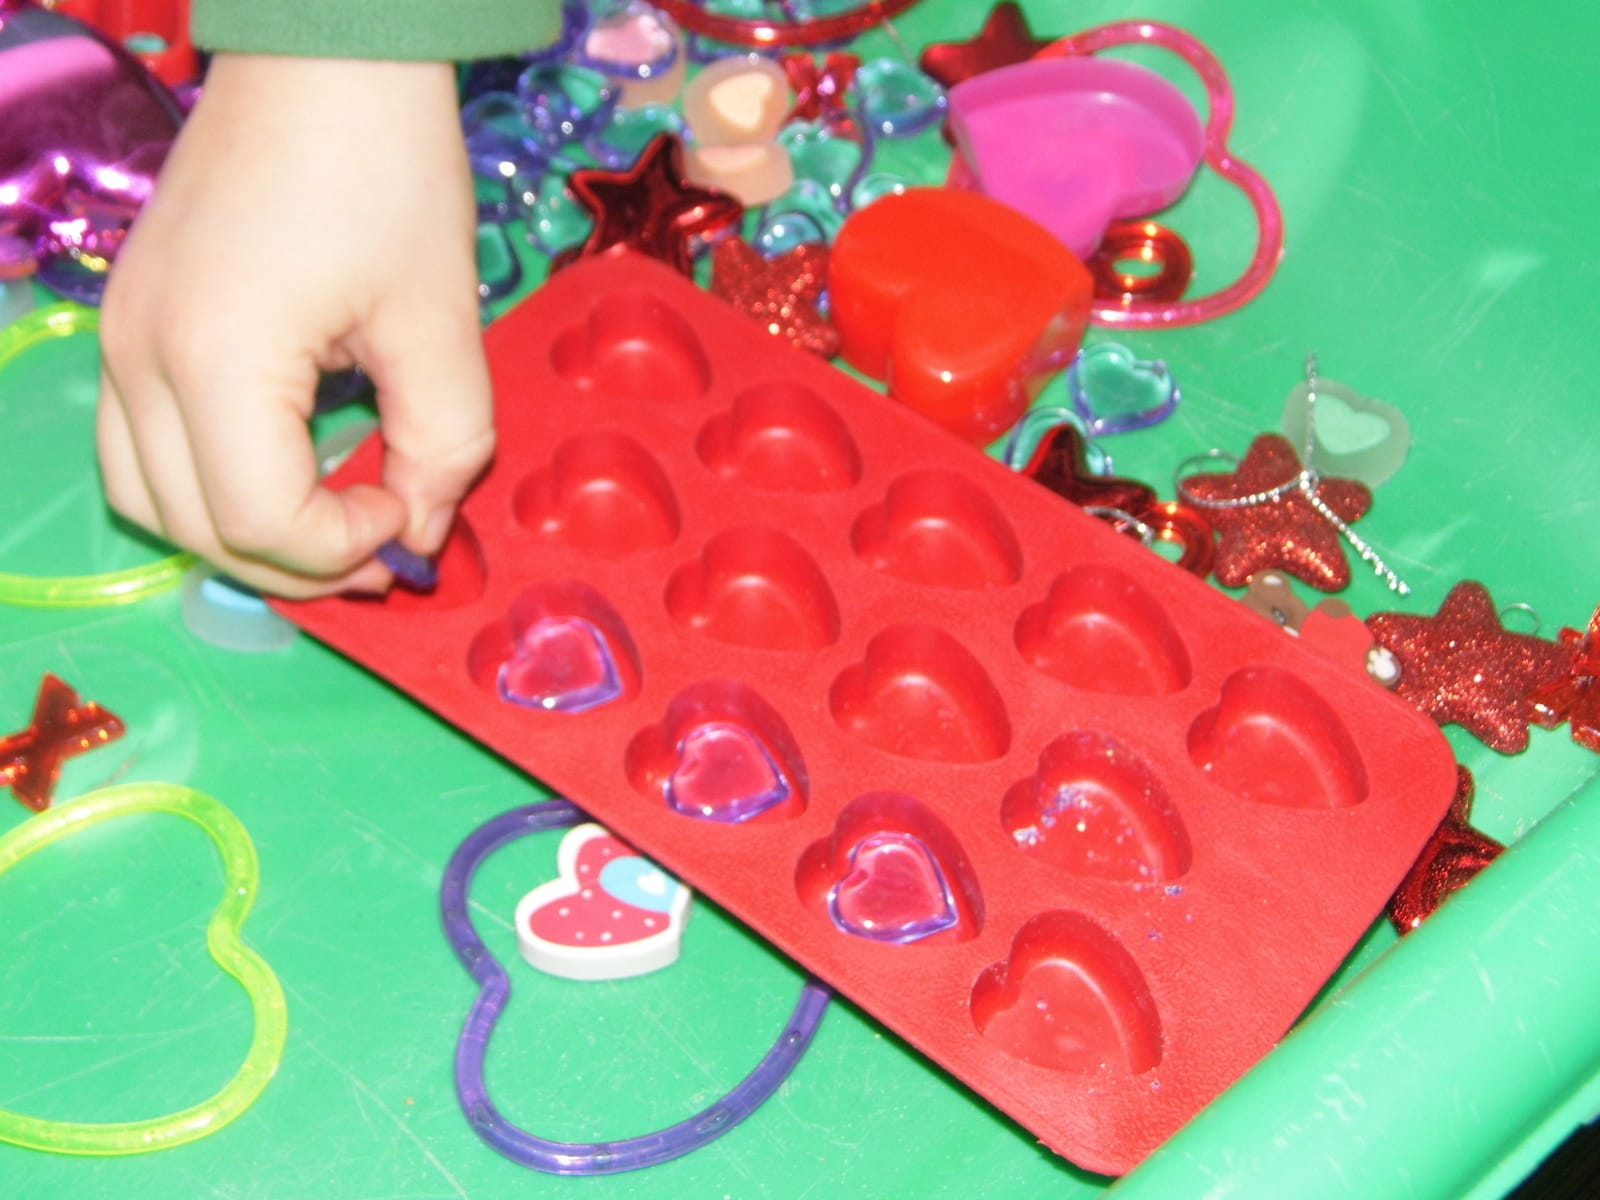 Valentines arts and crafts - Arts And Crafts Valentines Looking For More Valentine S Day Ideas I Have A Valentine